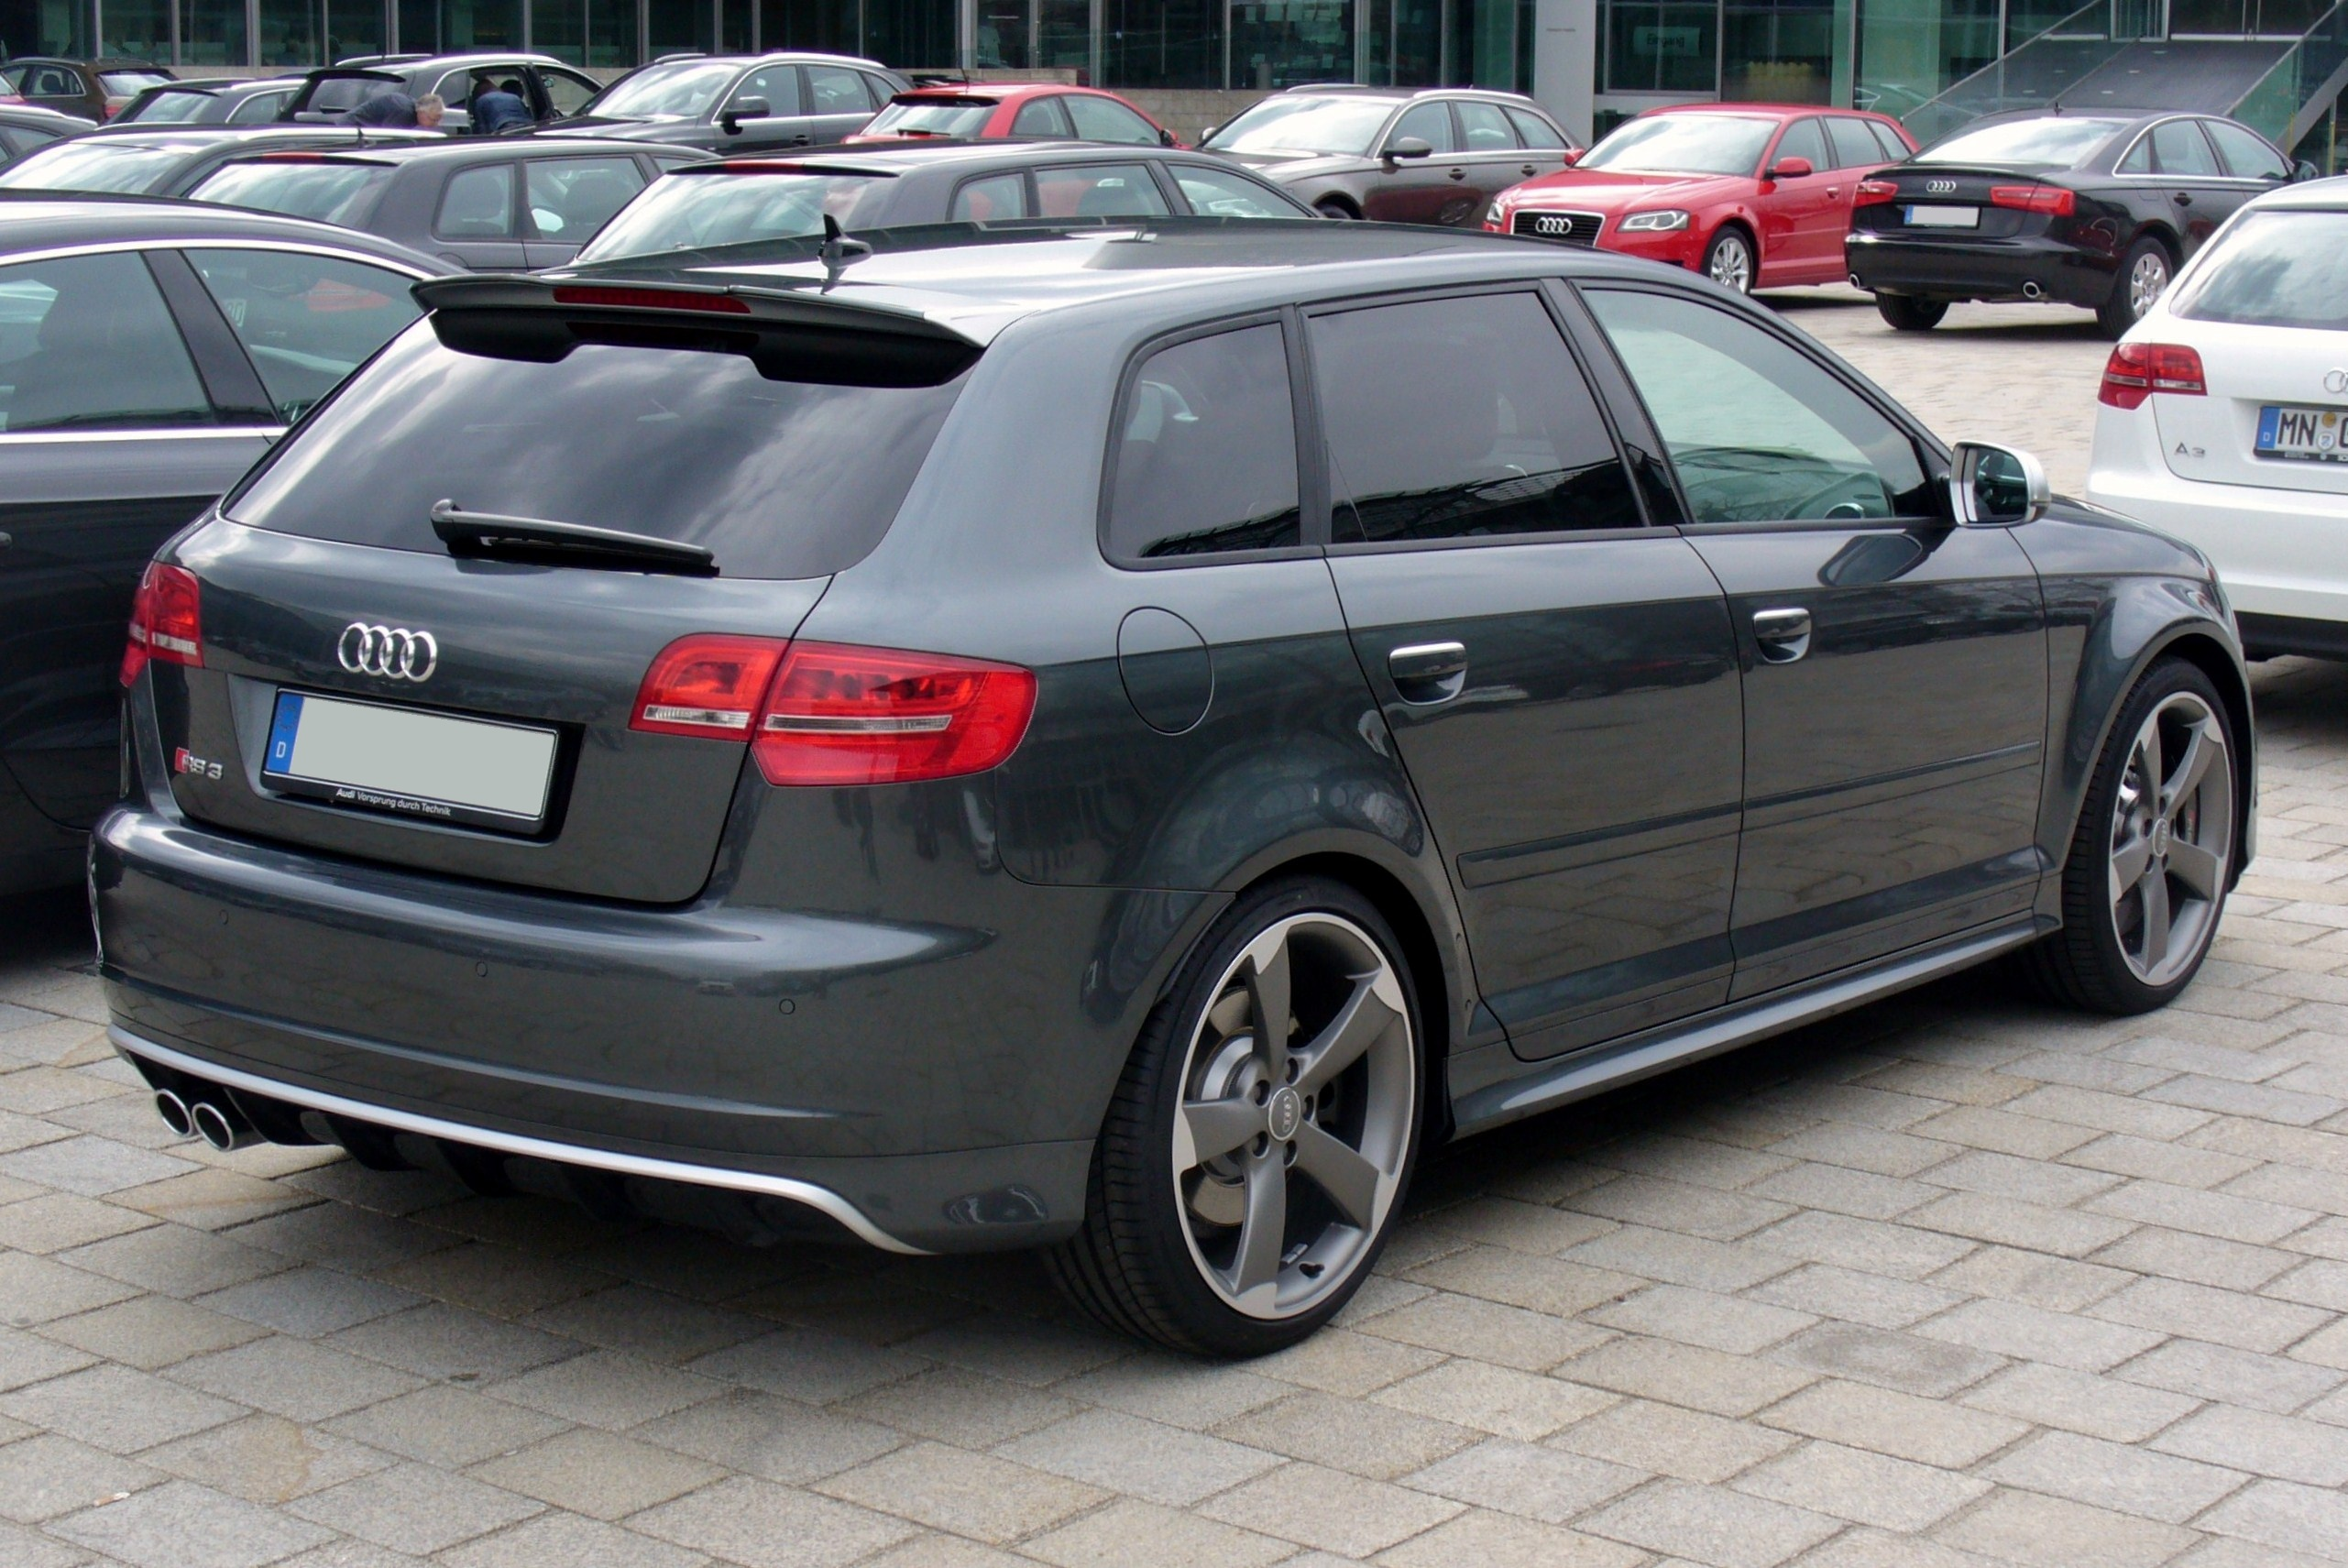 audi rs3 sportback technical details history photos on better parts ltd. Black Bedroom Furniture Sets. Home Design Ideas